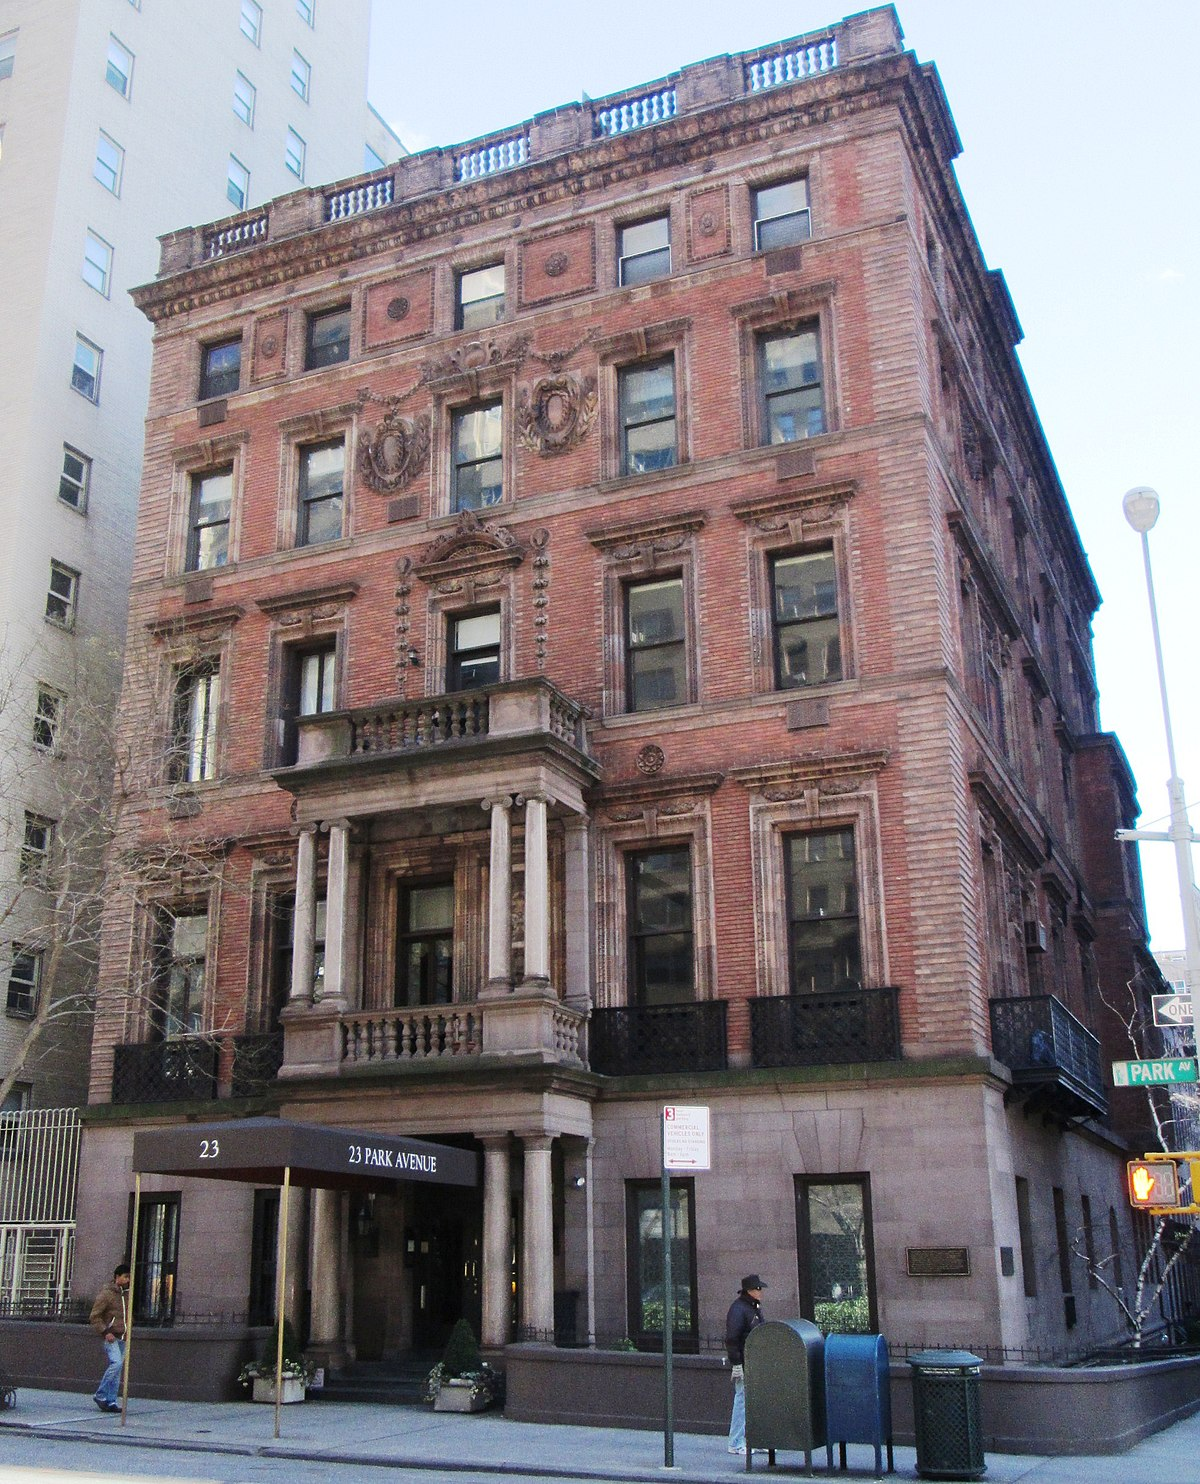 Robb house new york city wikipedia for New york city apartments for sale